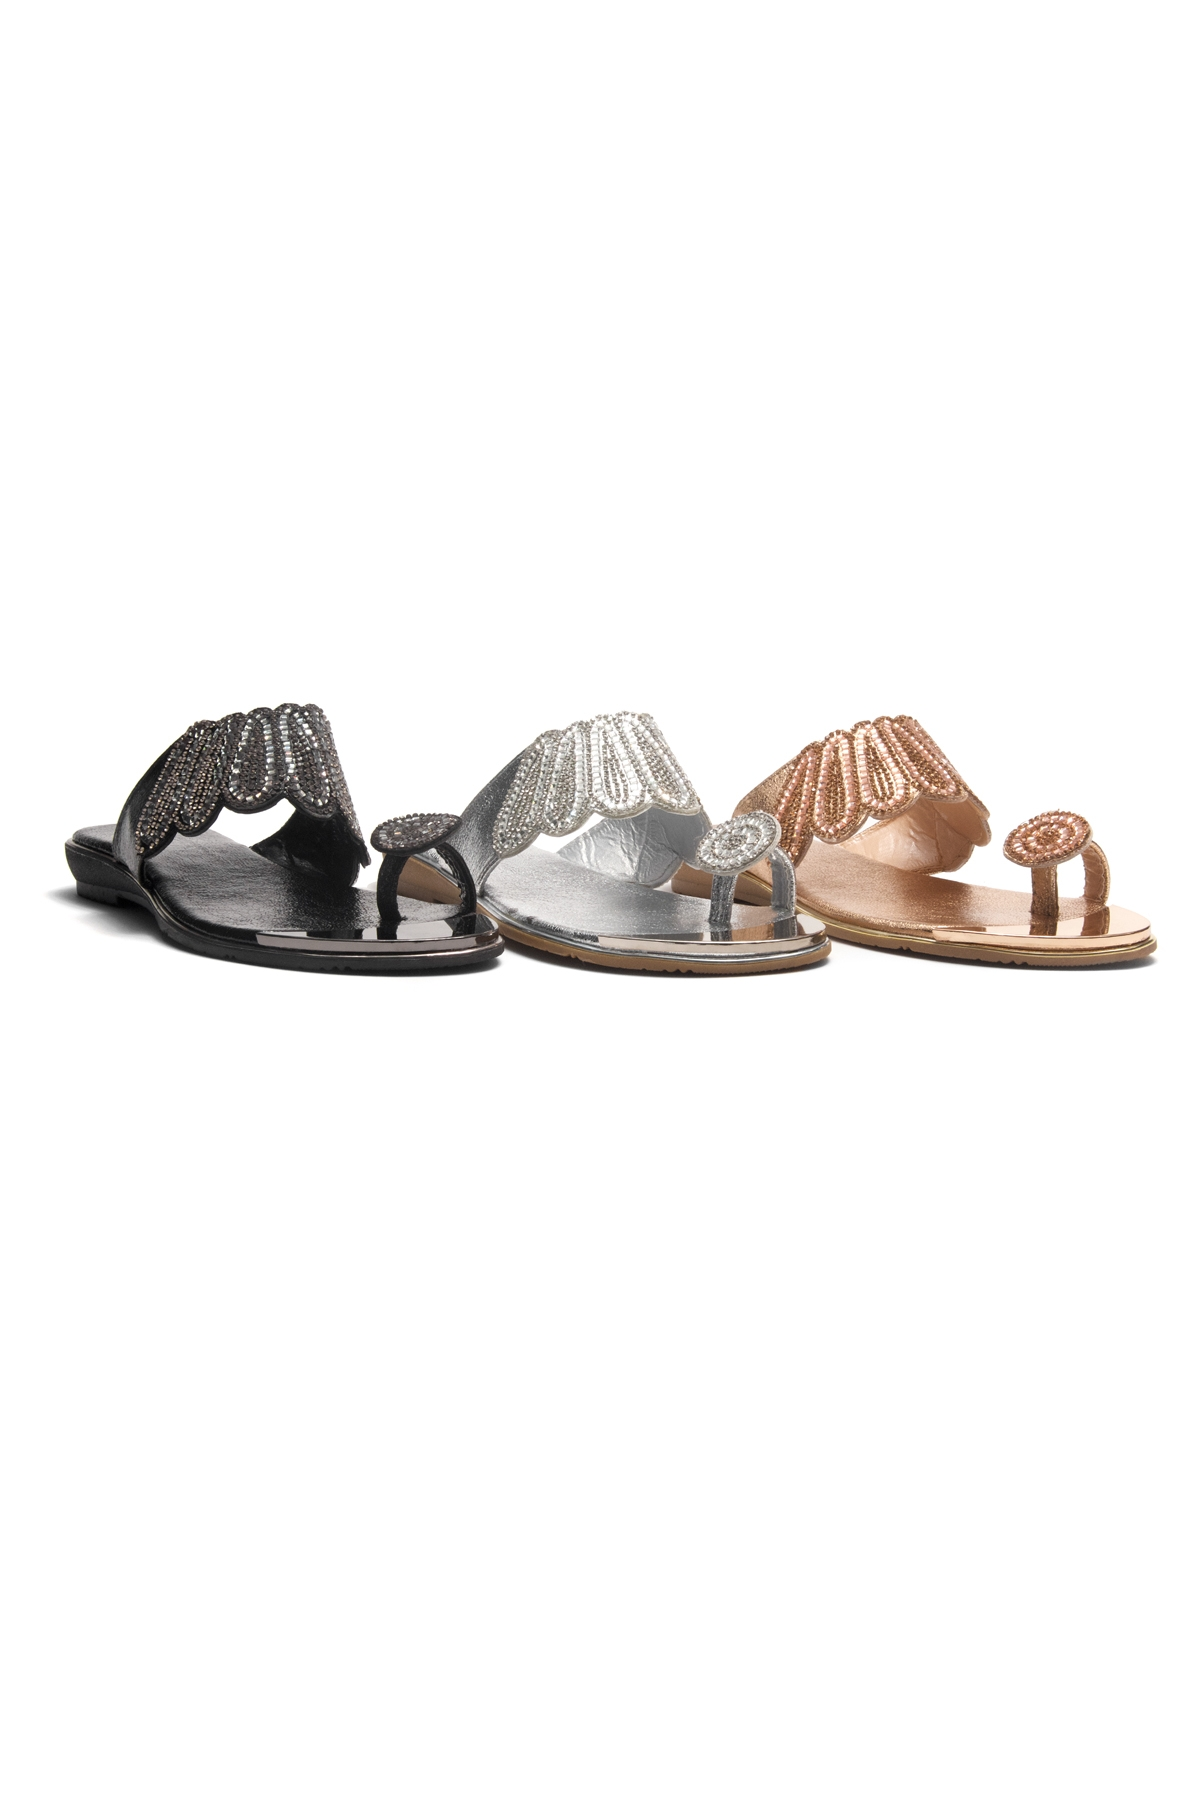 51a09879c HerStyle SHOWSTOPPER- Toe Ring with blink blink jeweled embellishment vamp